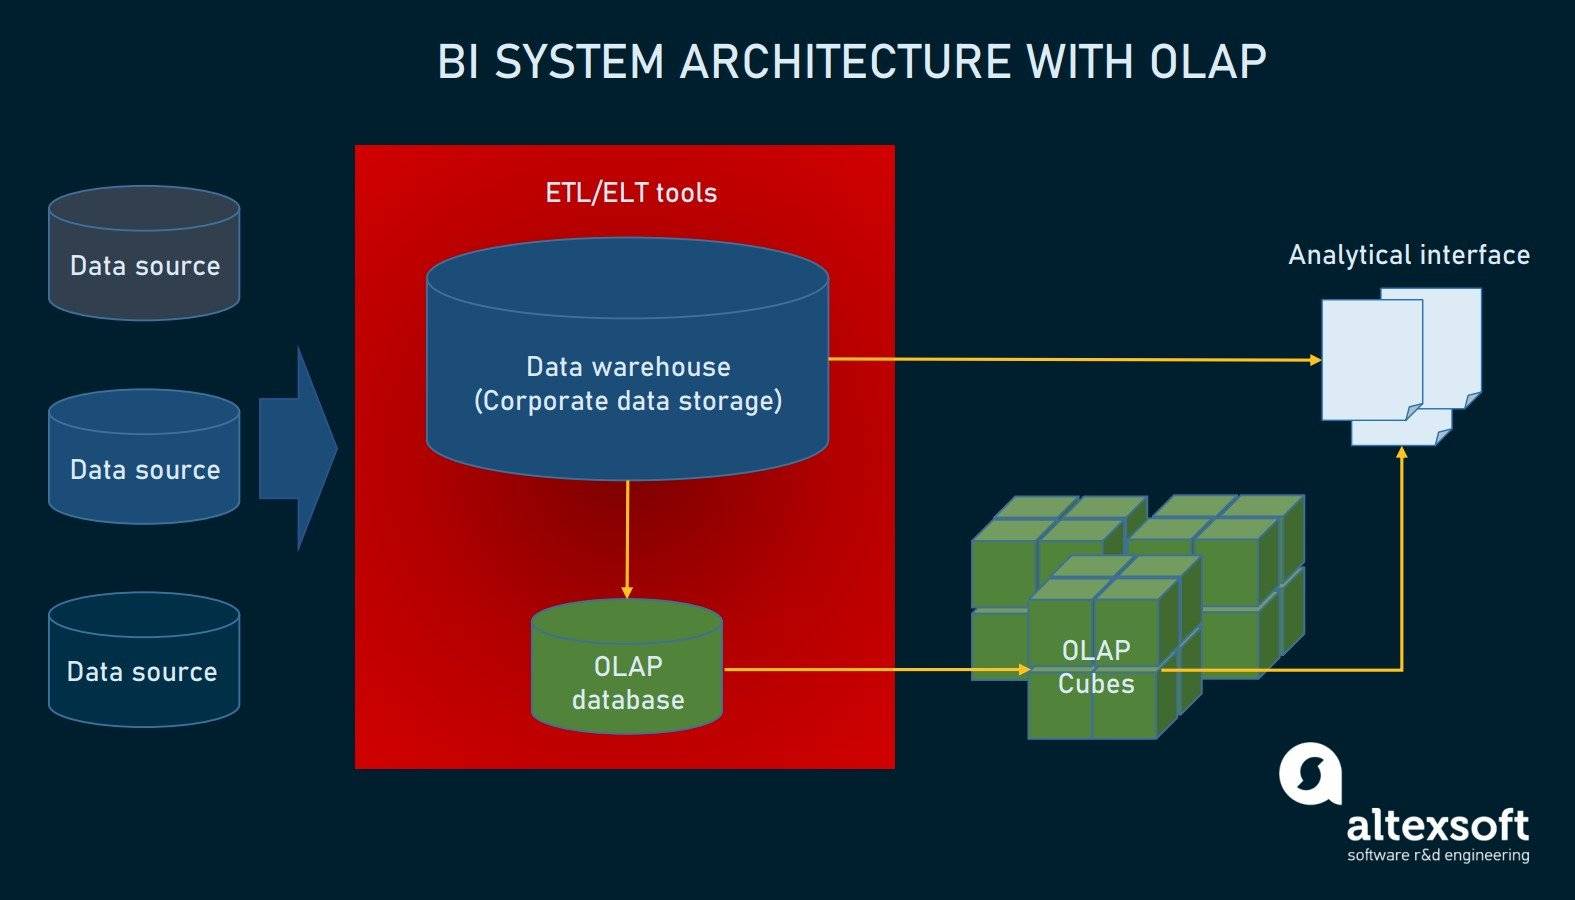 BI system architecture with OLAP